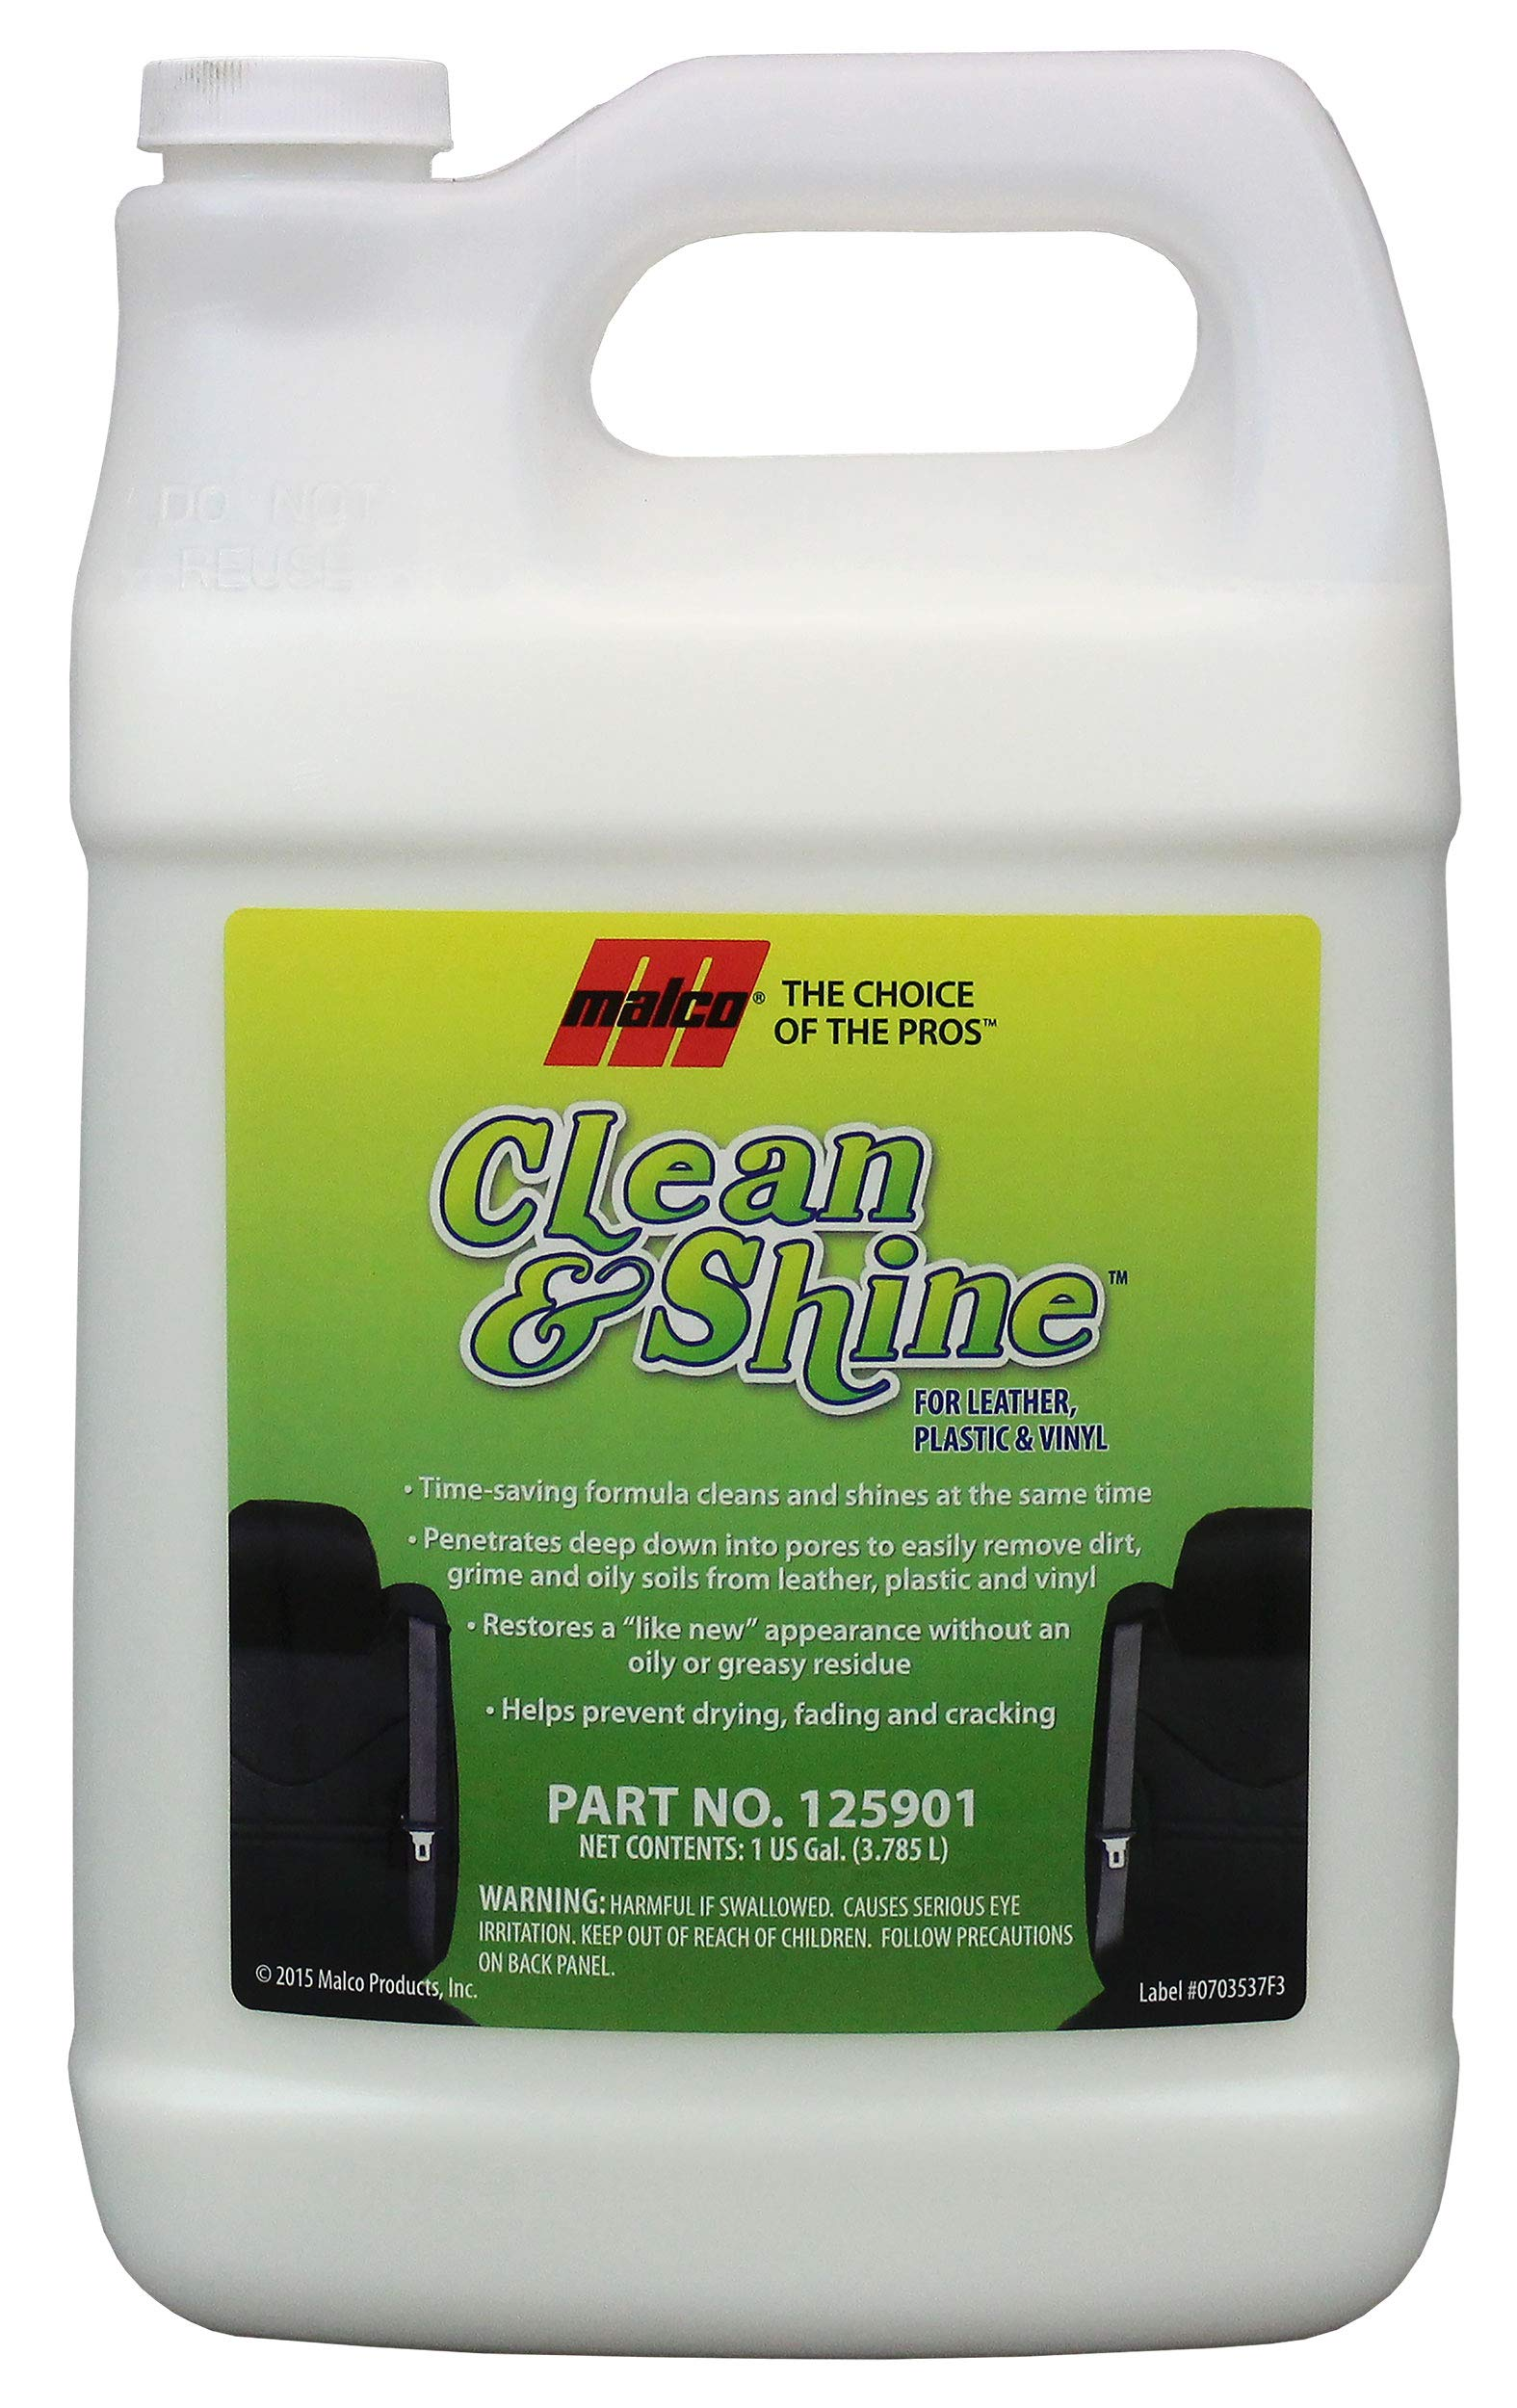 Malco Clean & Shine Interior Cleaner and Dressing, 1 gal (125901)